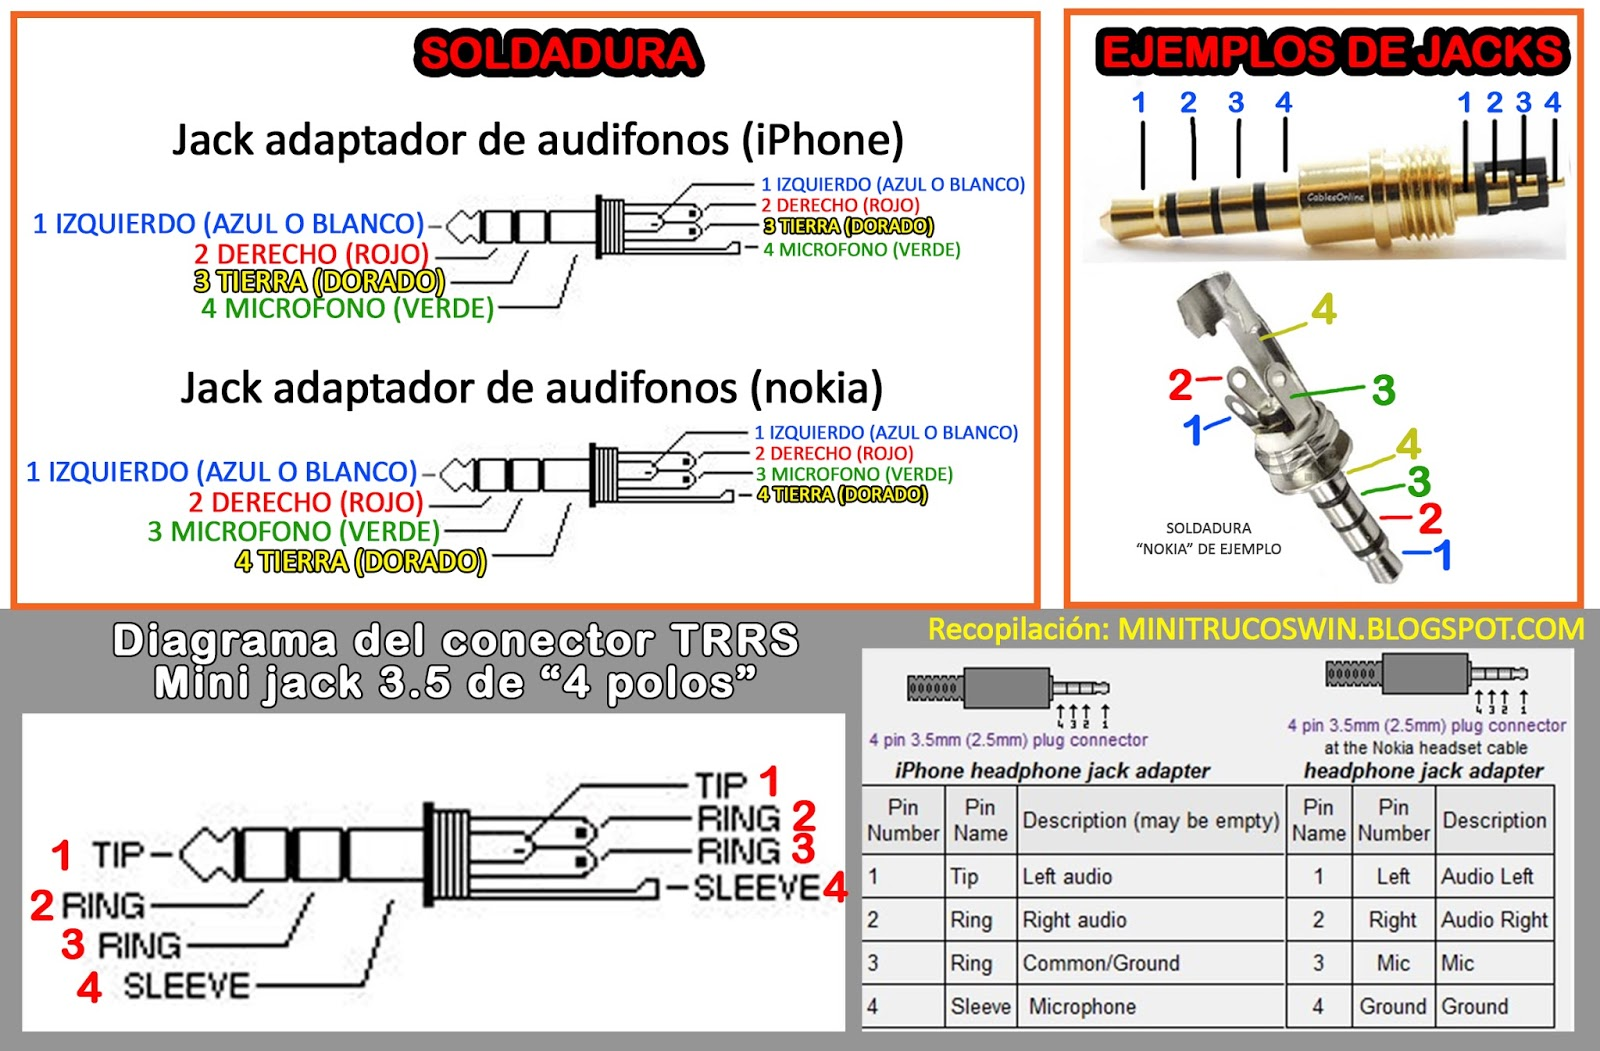 Viewtopic additionally Aviation Headset Plugs Wiring Schematic additionally El Mezclador Tipos De Entrada as well 135972 likewise Klinkenstecker. on trs plug wiring diagram